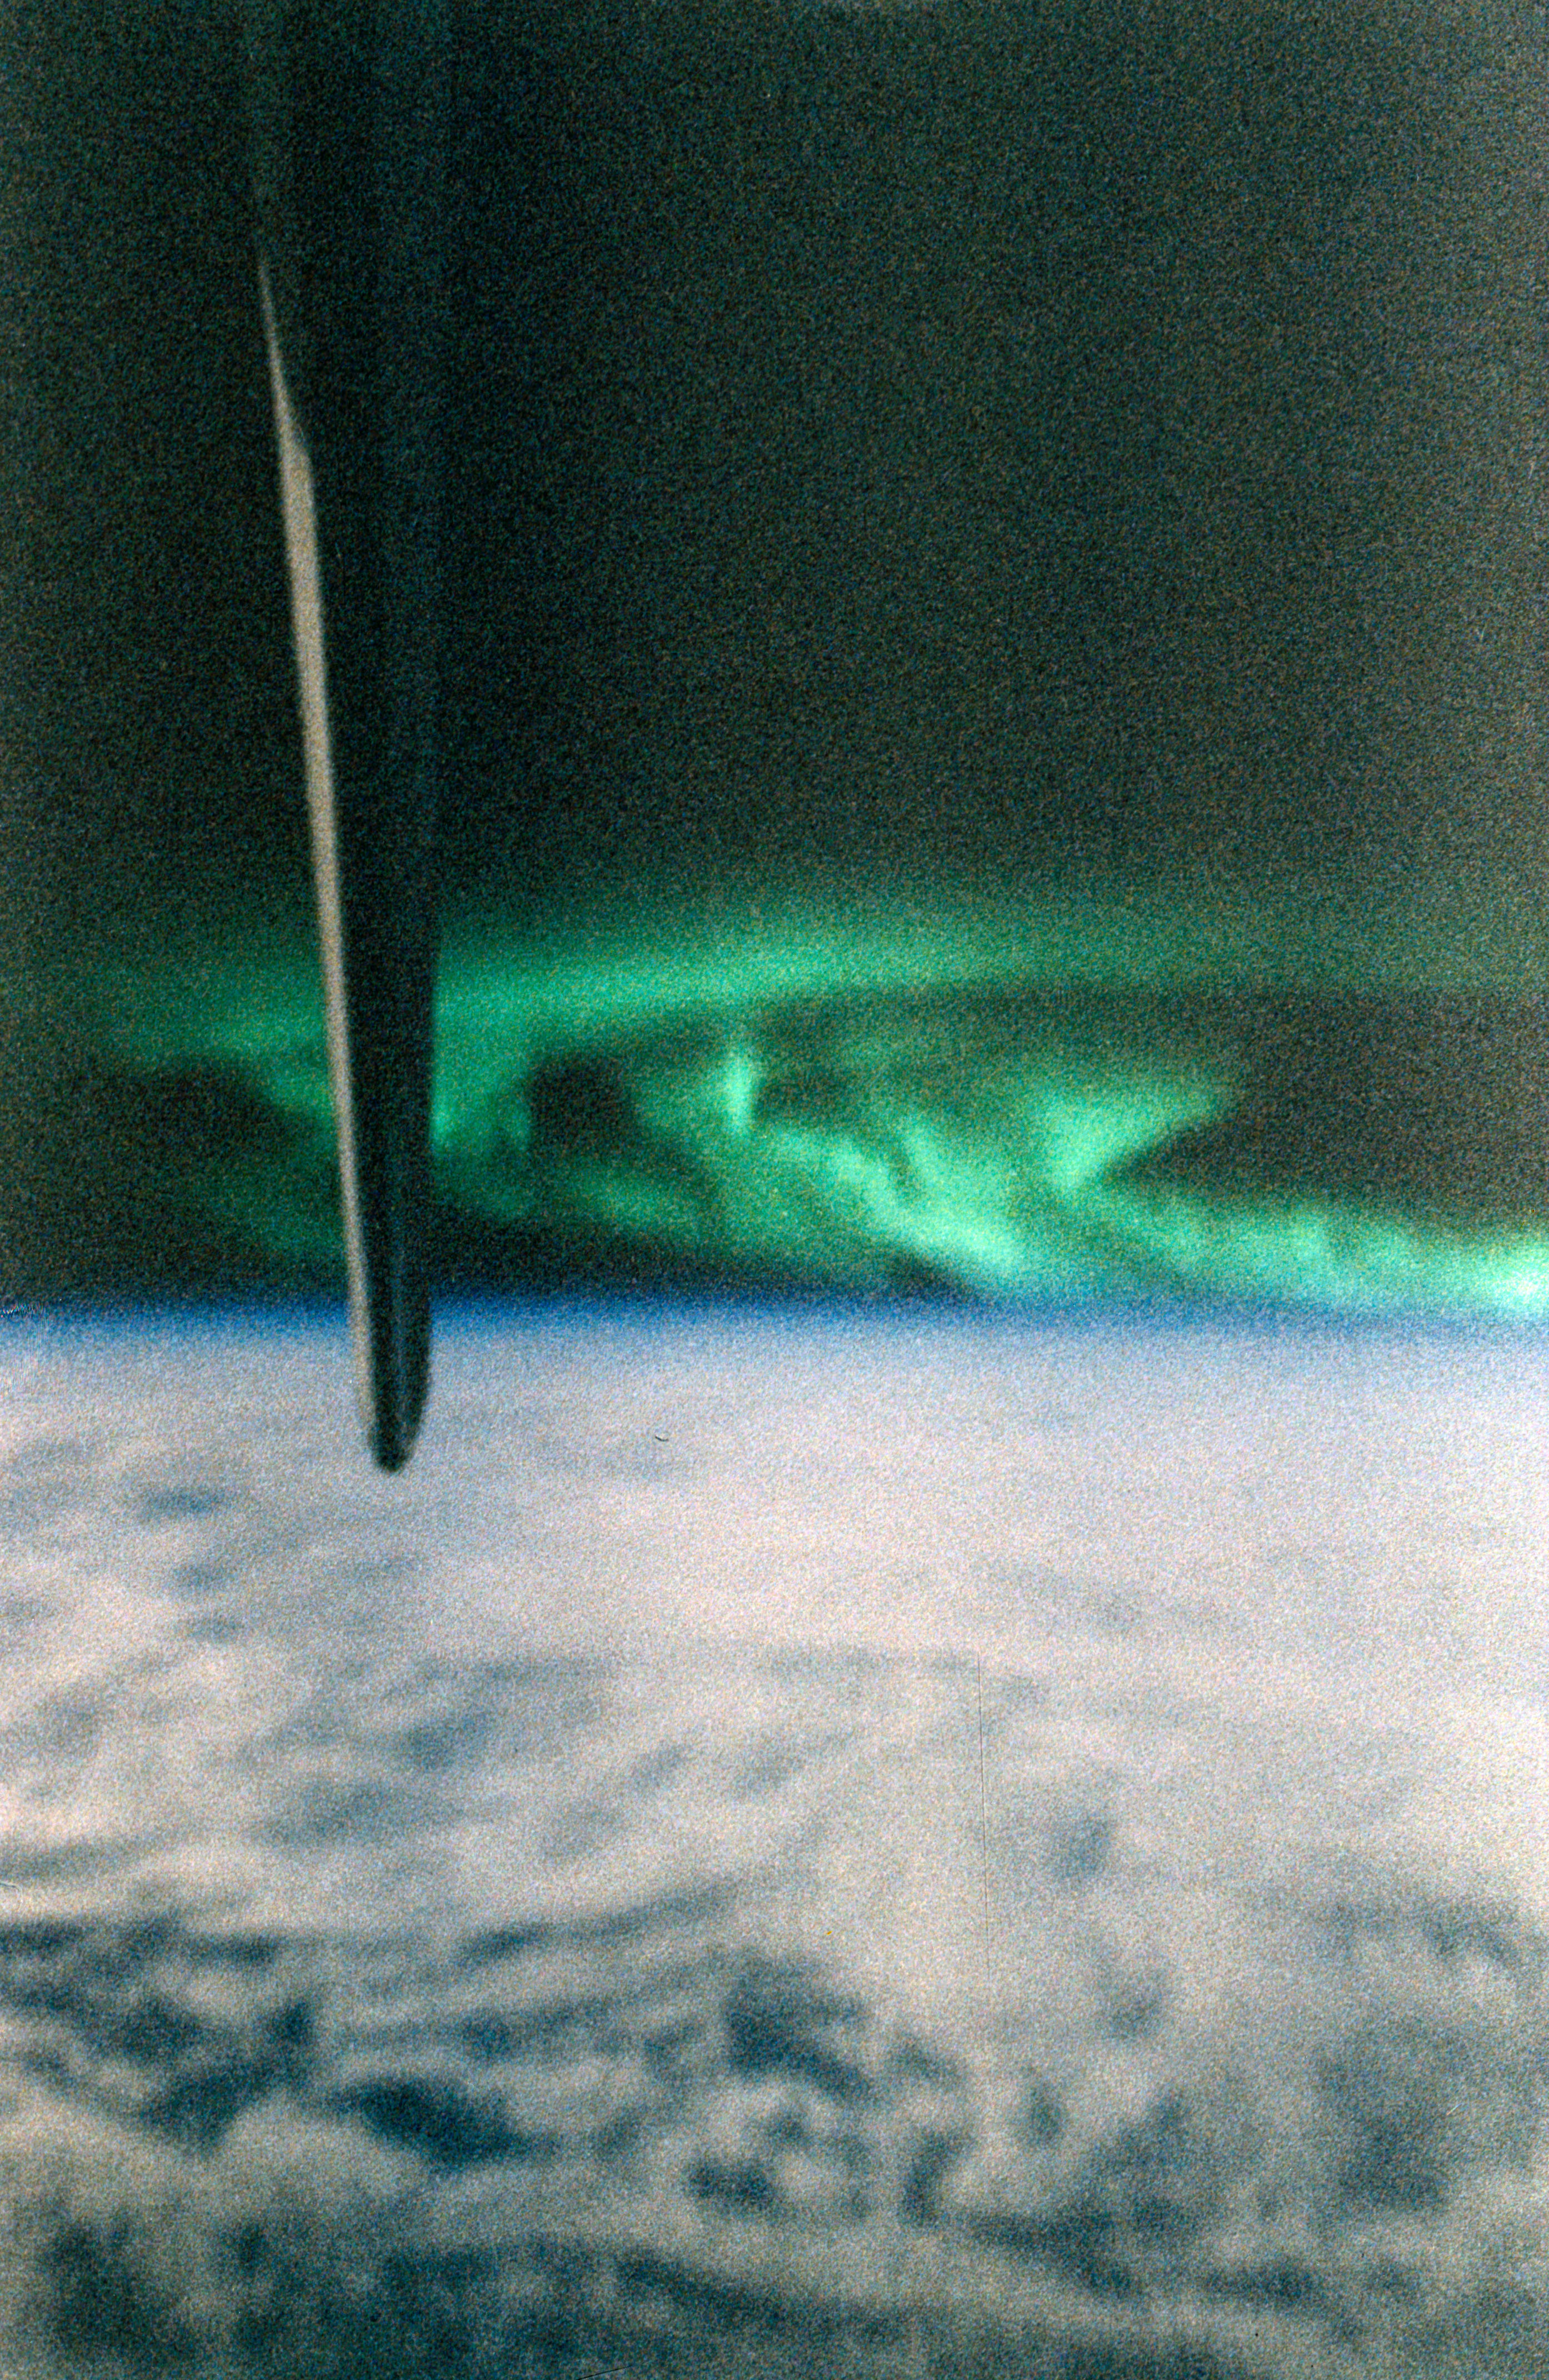 Aurora Australis taken from the shuttle Discovery during STS-85 ...